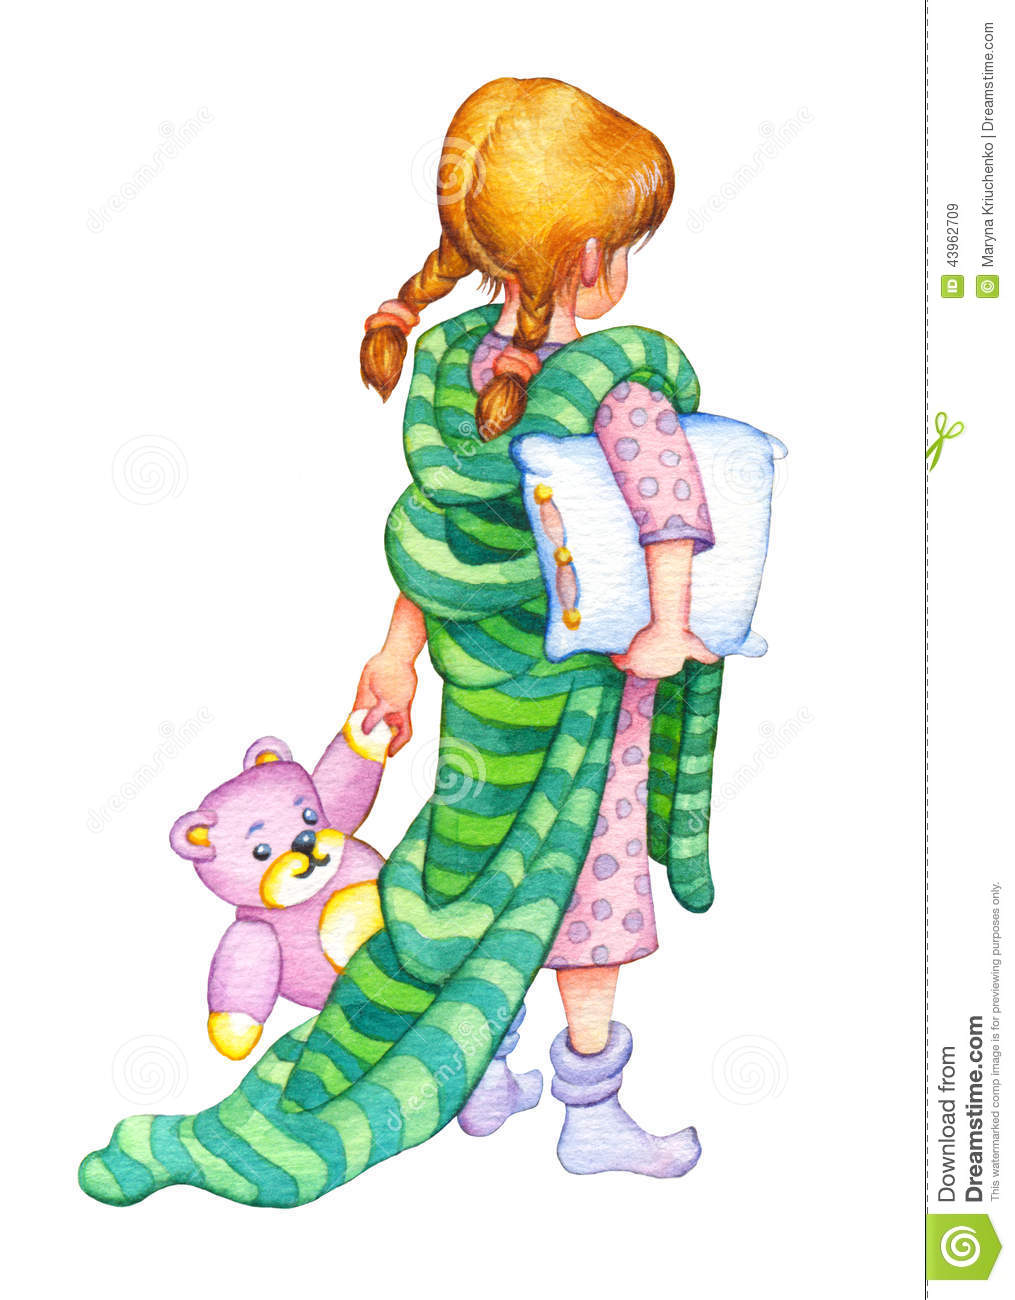 hight resolution of watercolor cute drawing in style of book illustration isolated on white background girl in a nightgown with a blanket over her shoulders a pillow under